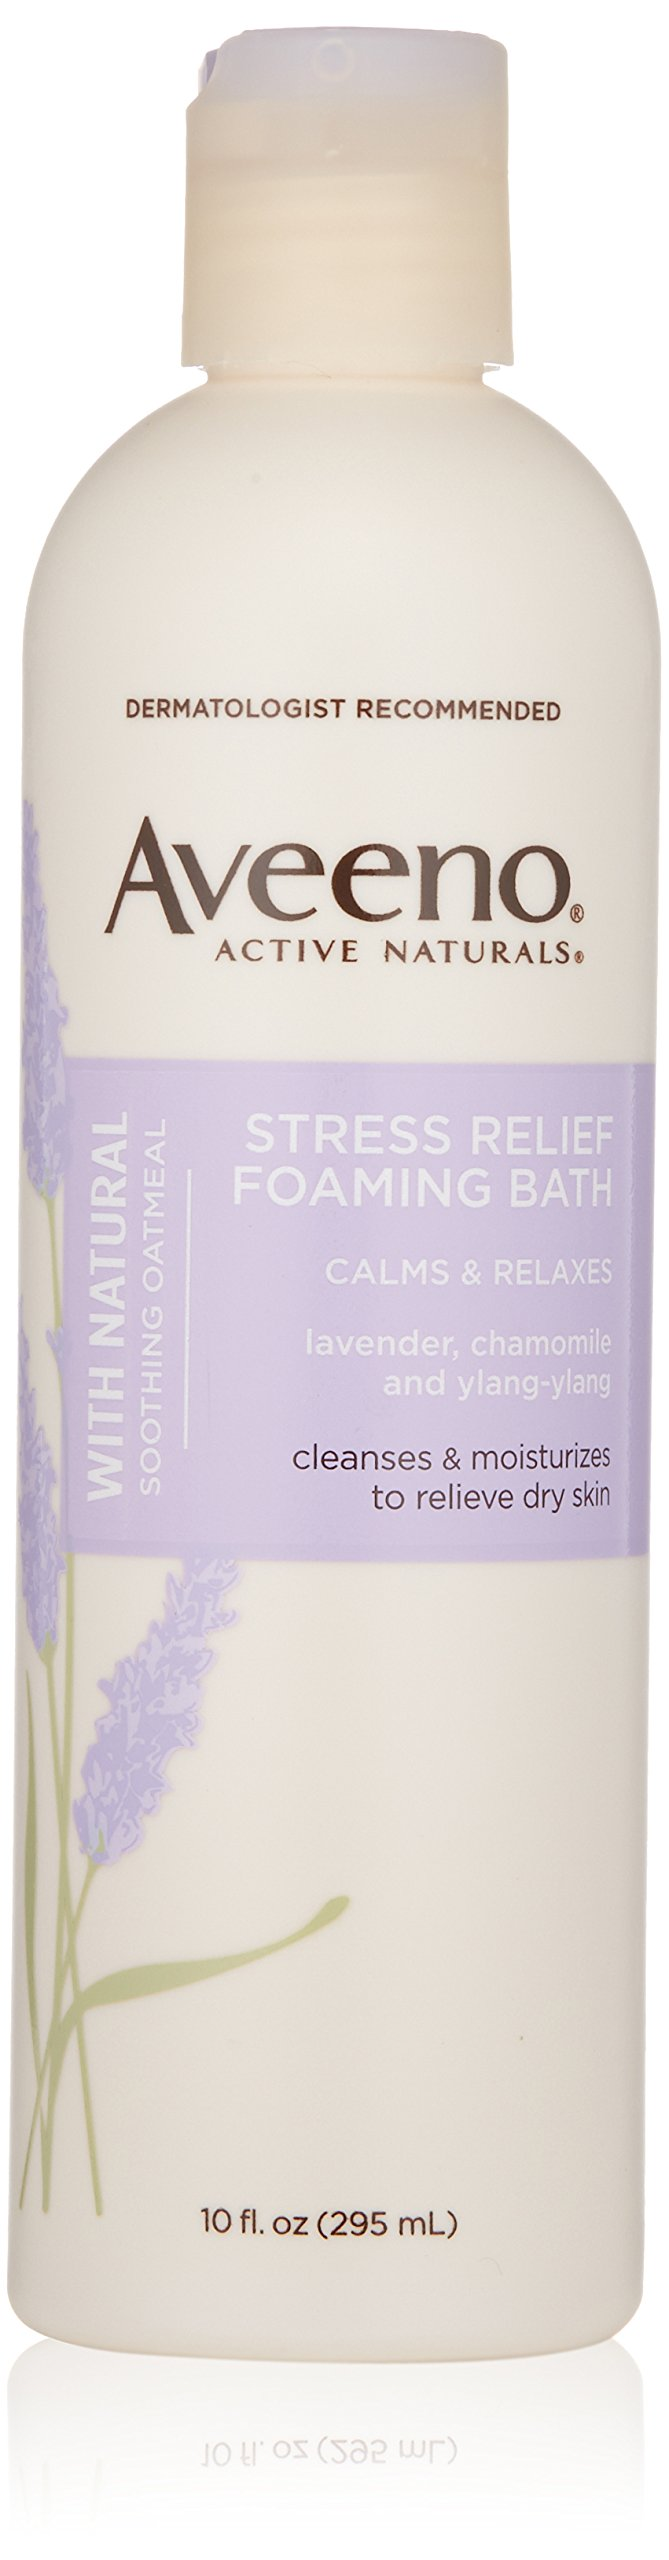 Aveeno Stress Relief Foaming Bath, 10 Fl. Oz